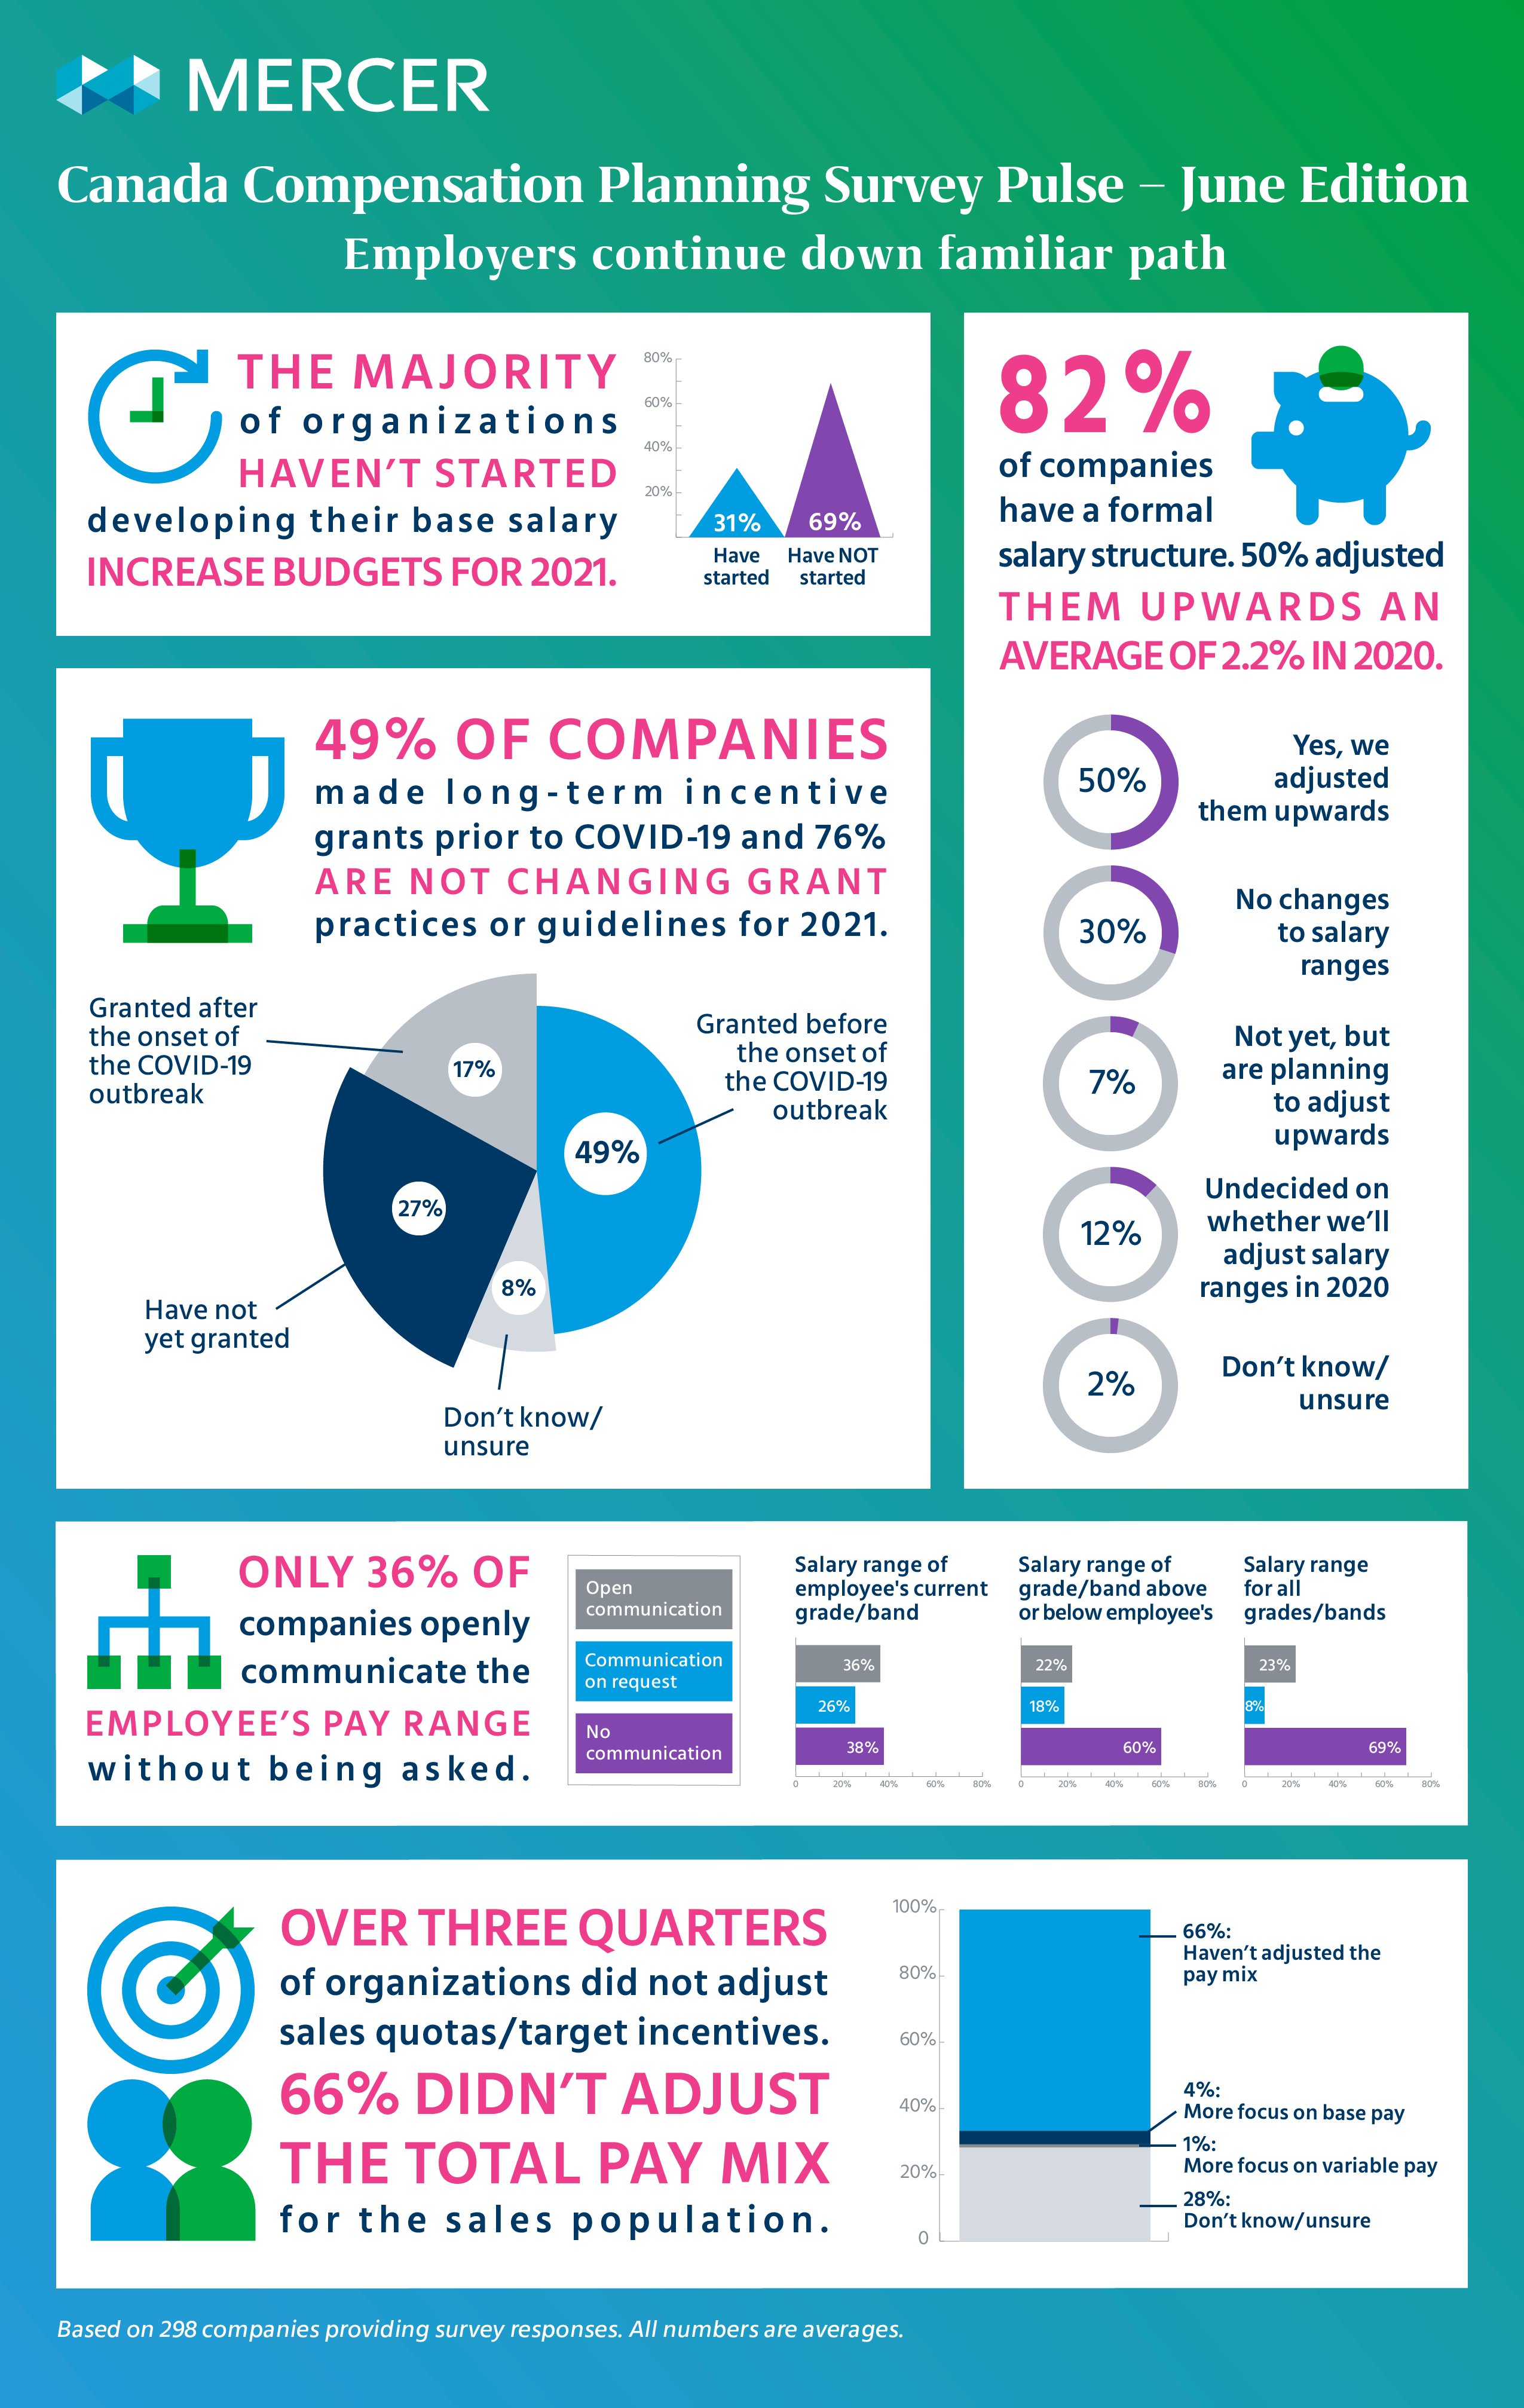 US Compensation Planning Survey Pulse – May Edition infographic image